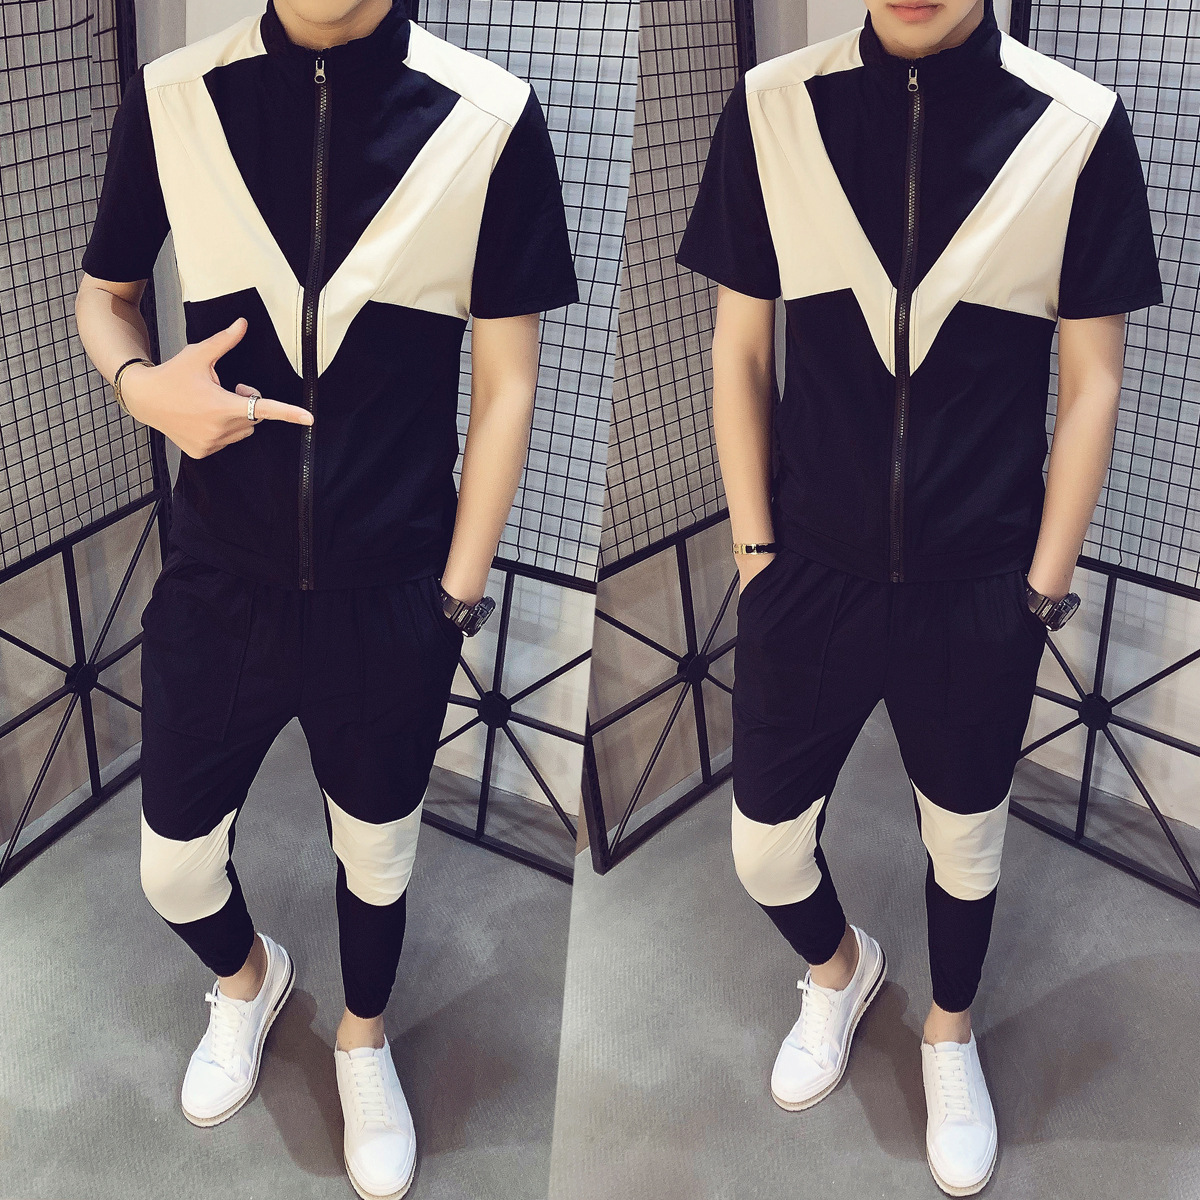 2020 Summer New Style Men'S Wear Fashion Brand Short Sleeve T-shirt Casual Two-Piece Set